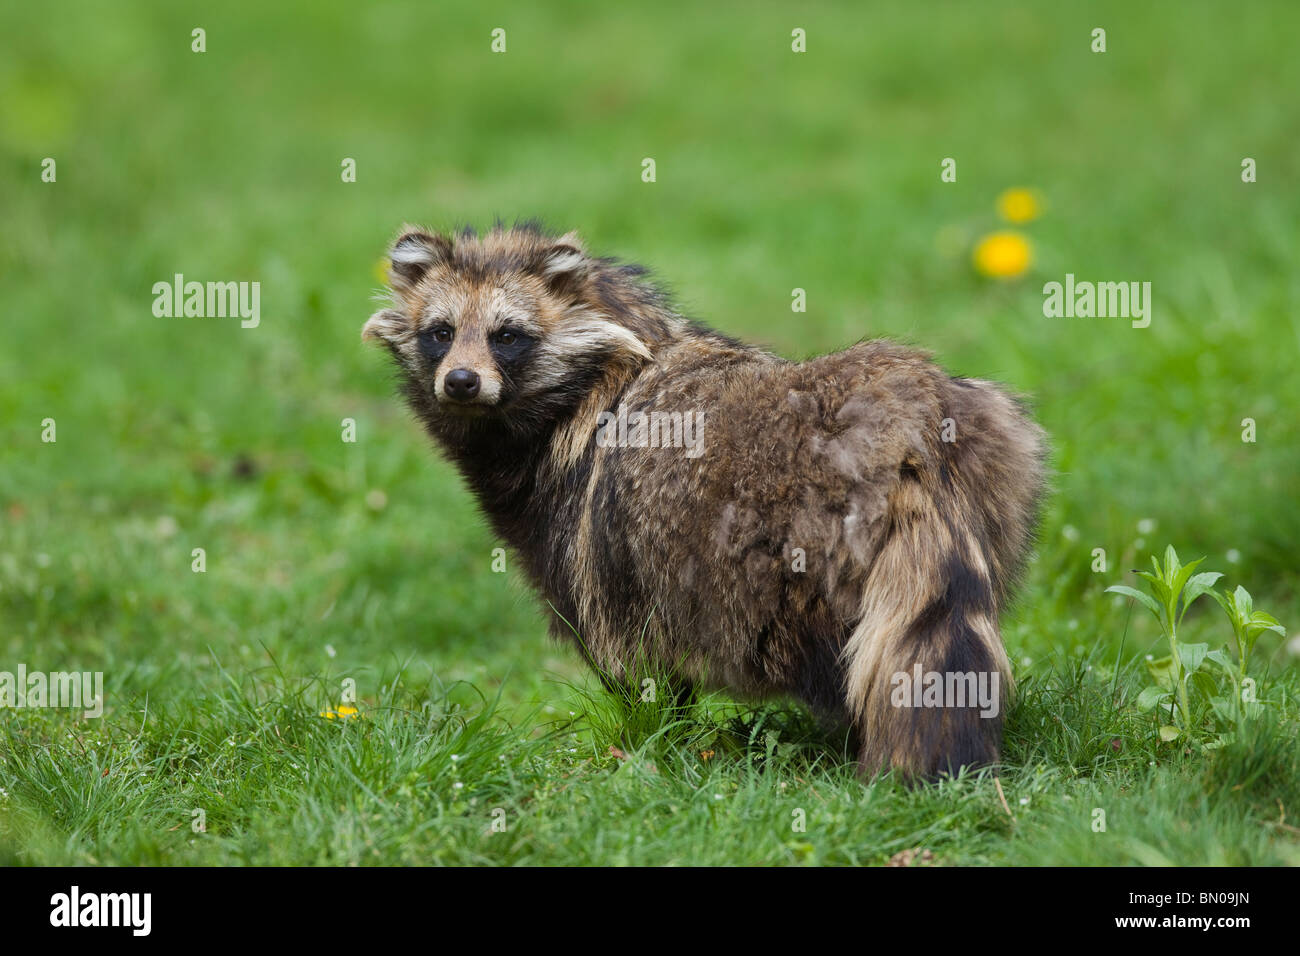 Racoon Dog Nyctereutes Procyonoides Standing In A Meadow